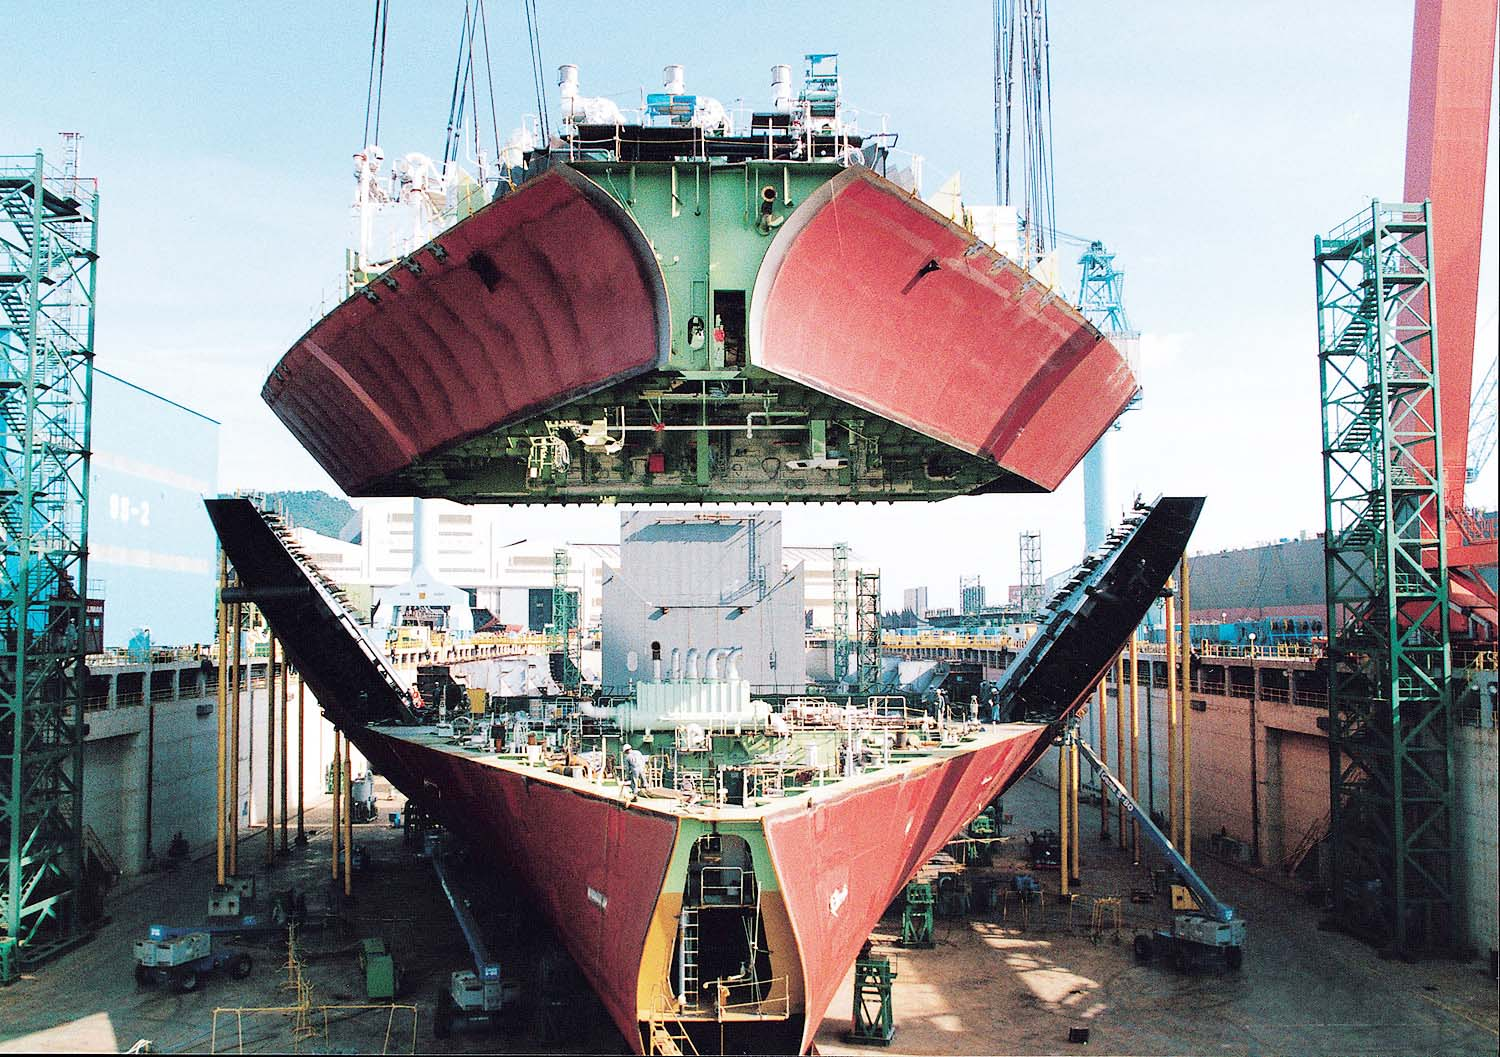 Korean yards expected to cash in on orders for LNG-powered ships